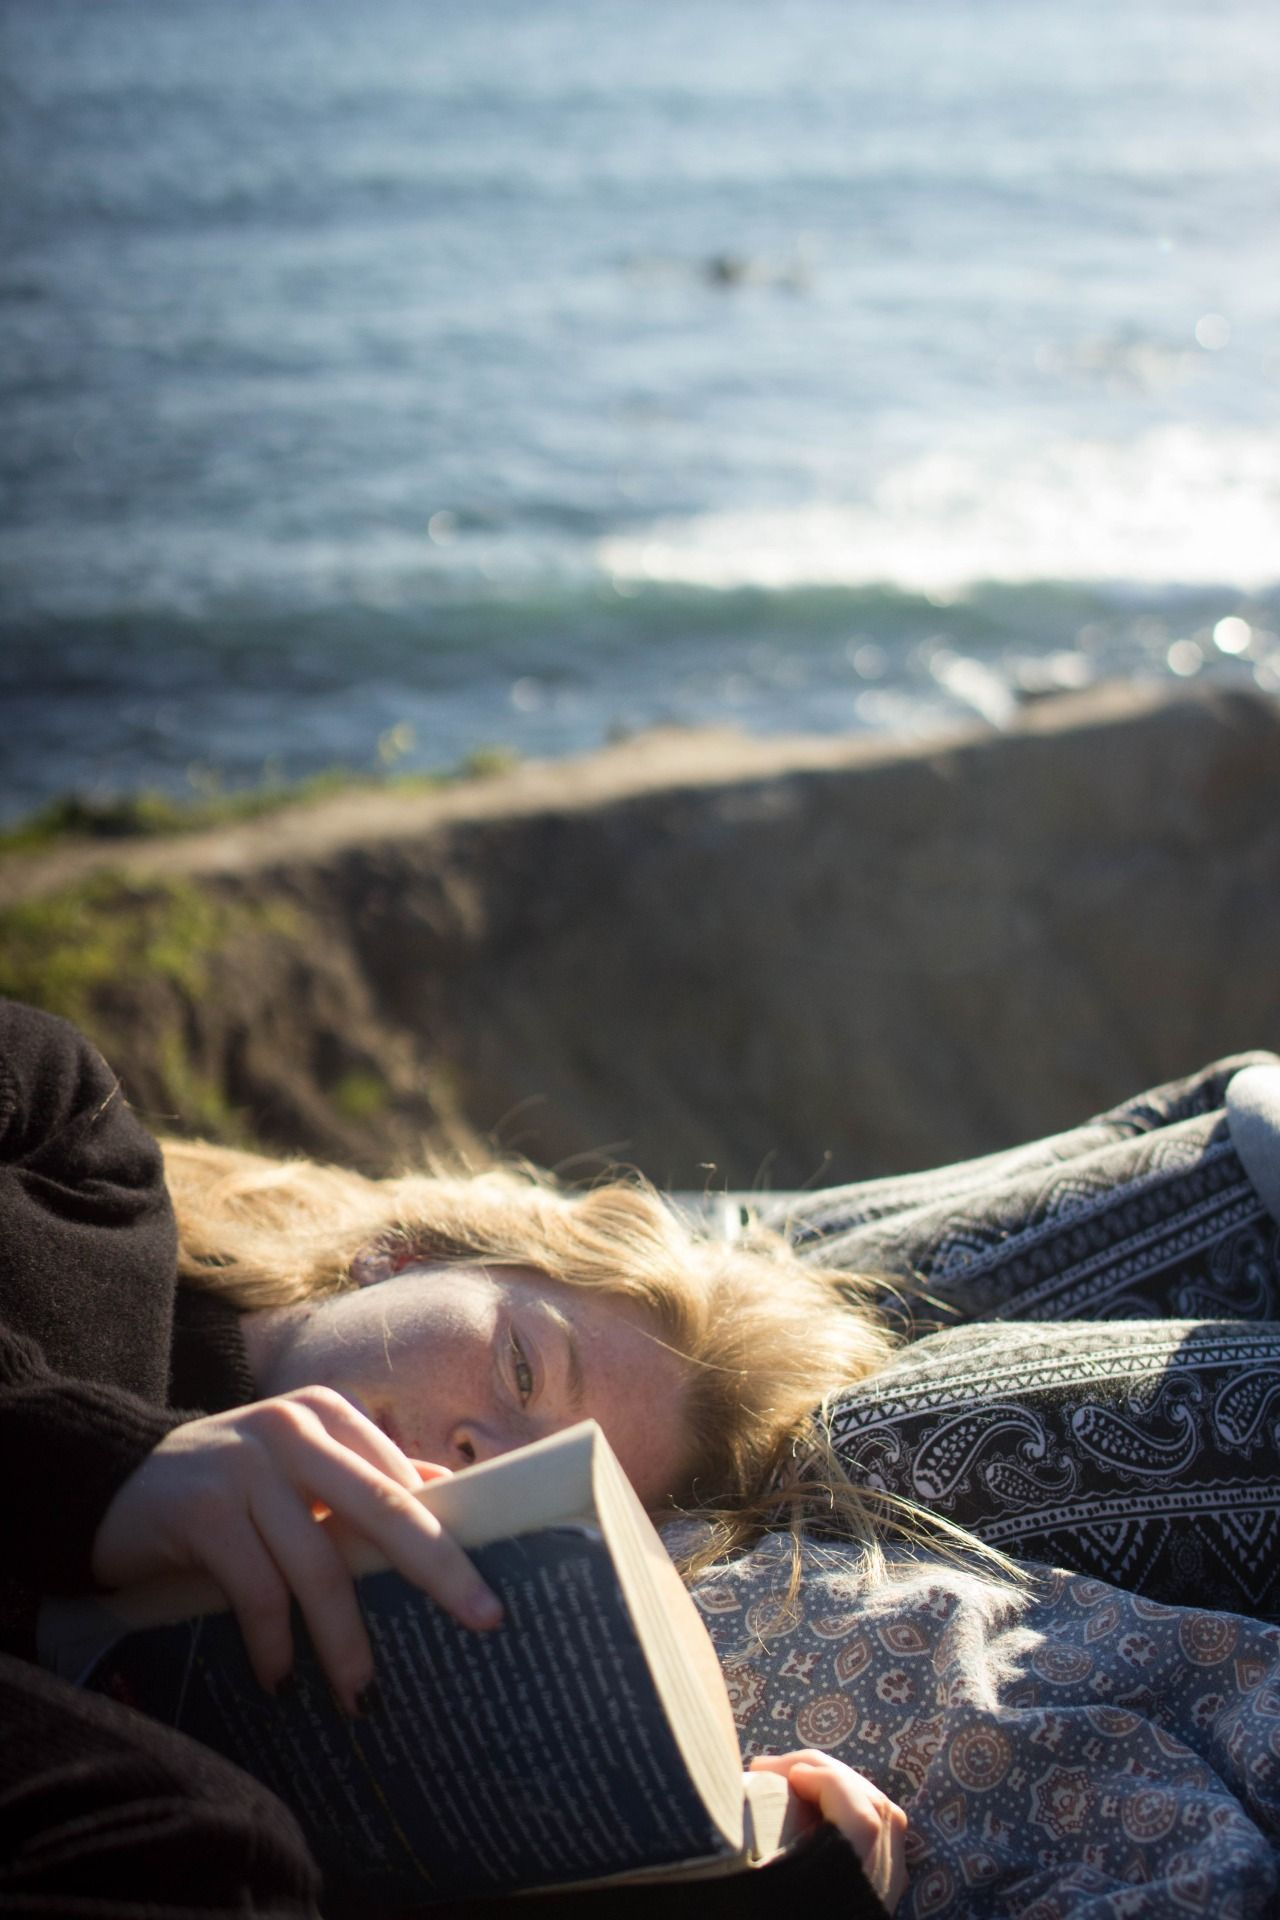 Reading in a beautiful place | Woman reading, Photography, Photo